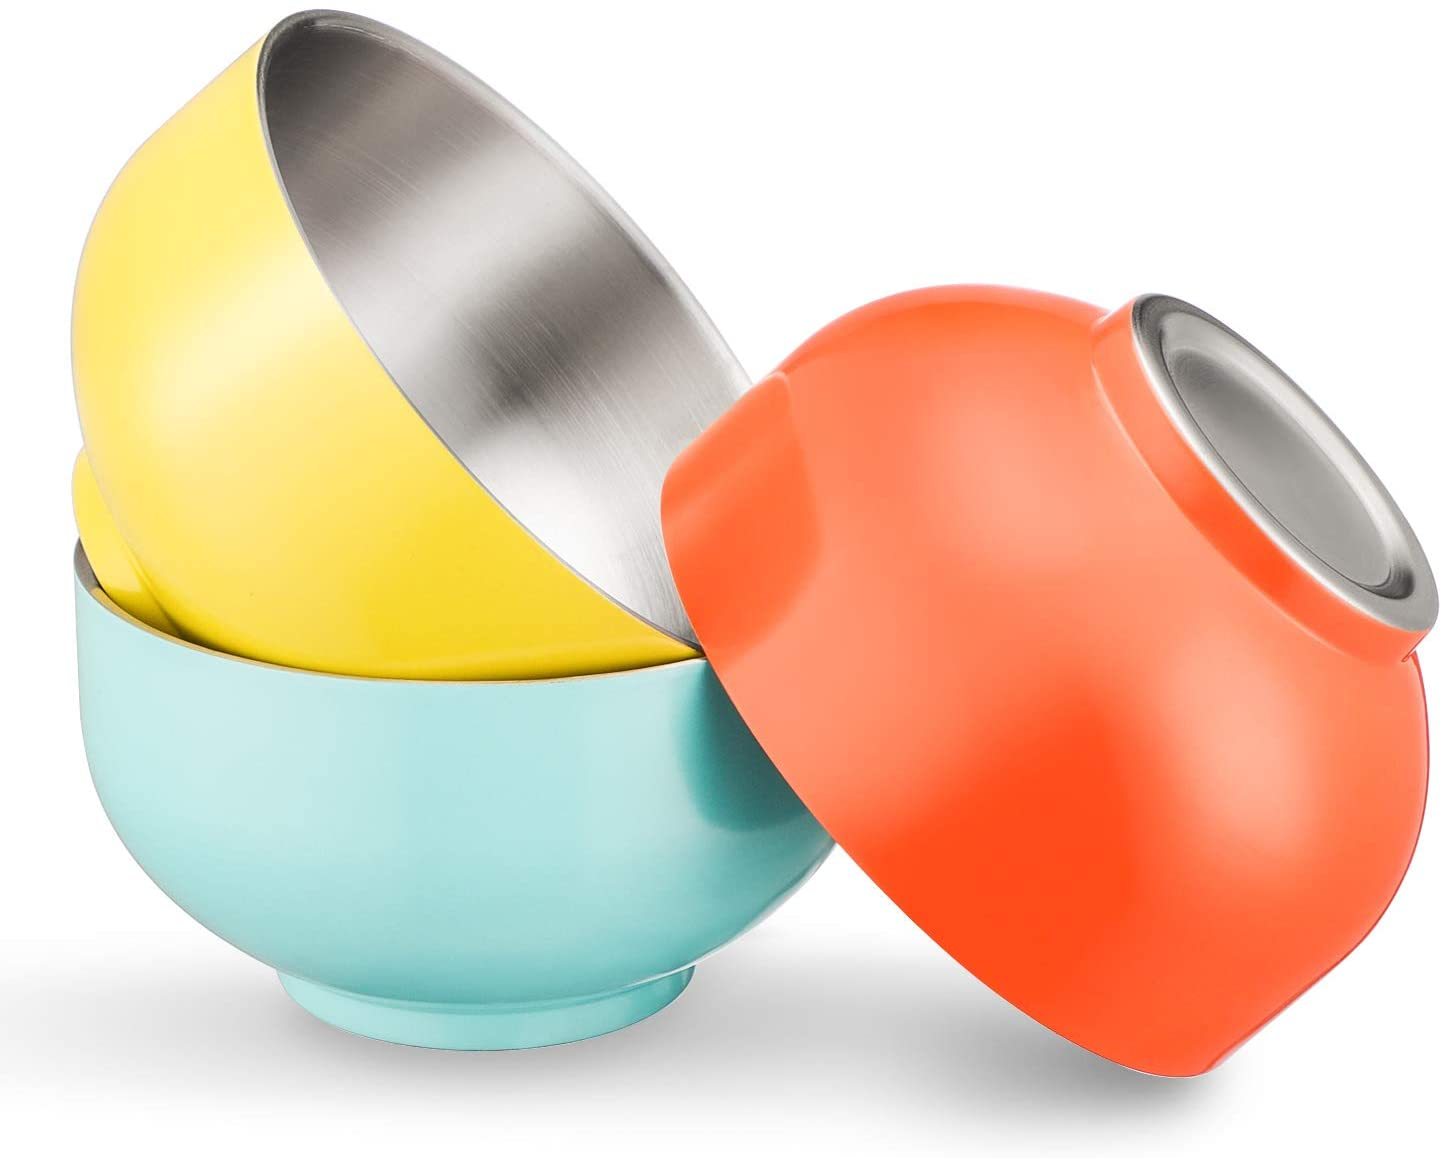 Stainless Steel Soup Bowls, Beasea 16oz 5.4 Inch Double Walled Insulated Salad Bowls Set of 3, Blue Yellow Orange Stainless Steel Mixing Bowls Metal Rice Cereal Serving Bowls for Kids and Adults